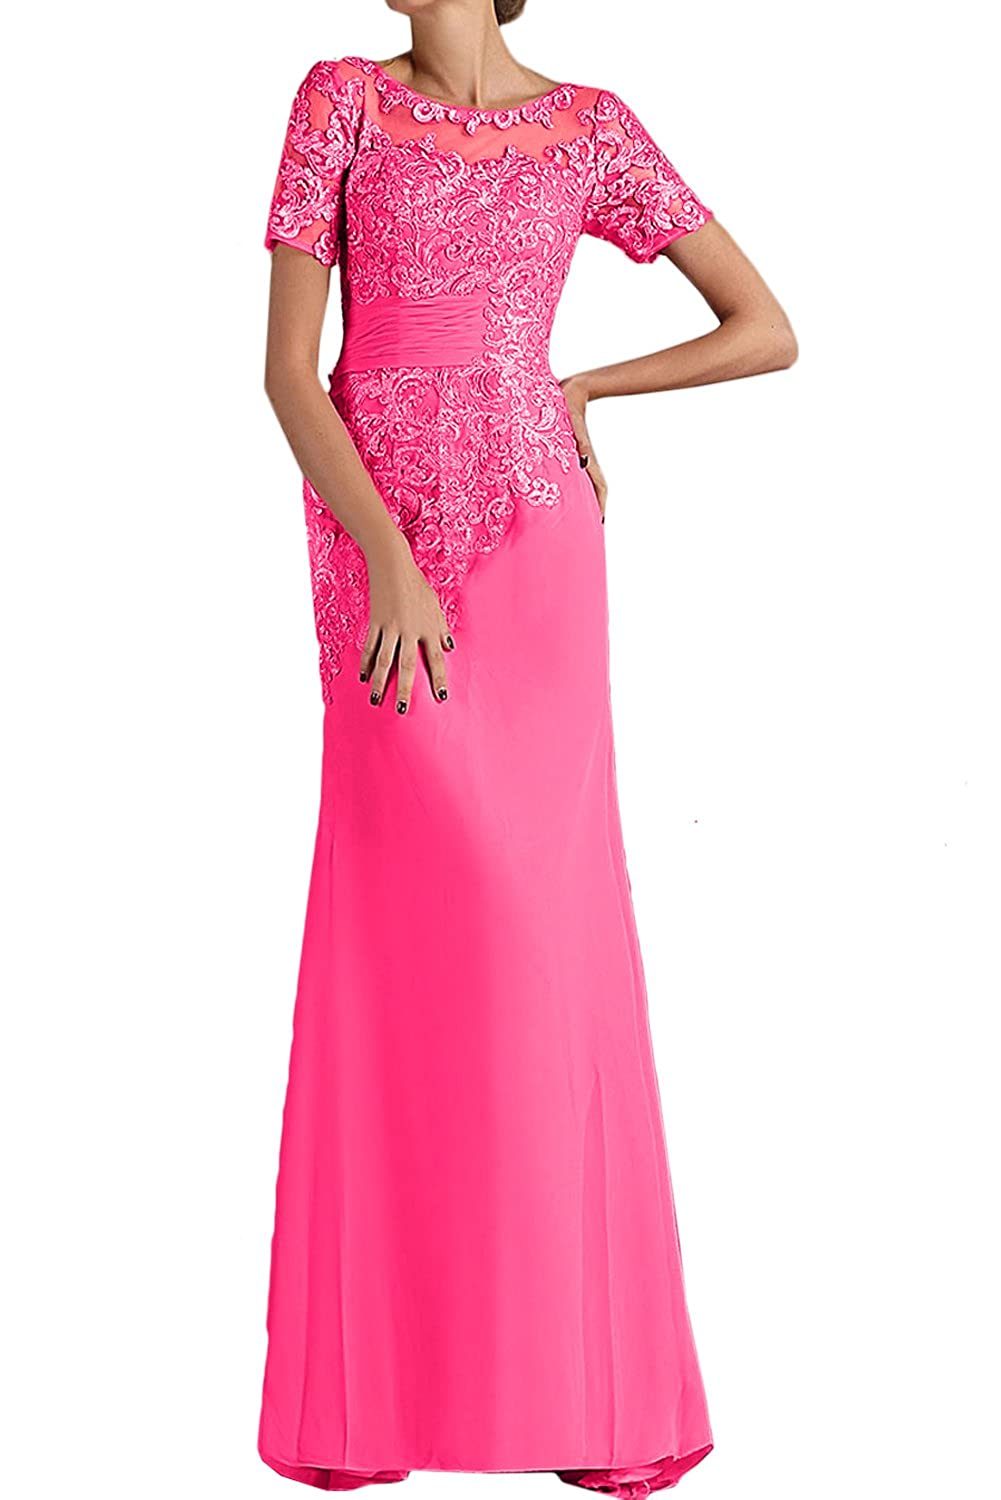 DressyMe Womens Lace Long Party Dresses A-Line Short Sleeves Wedding Dress